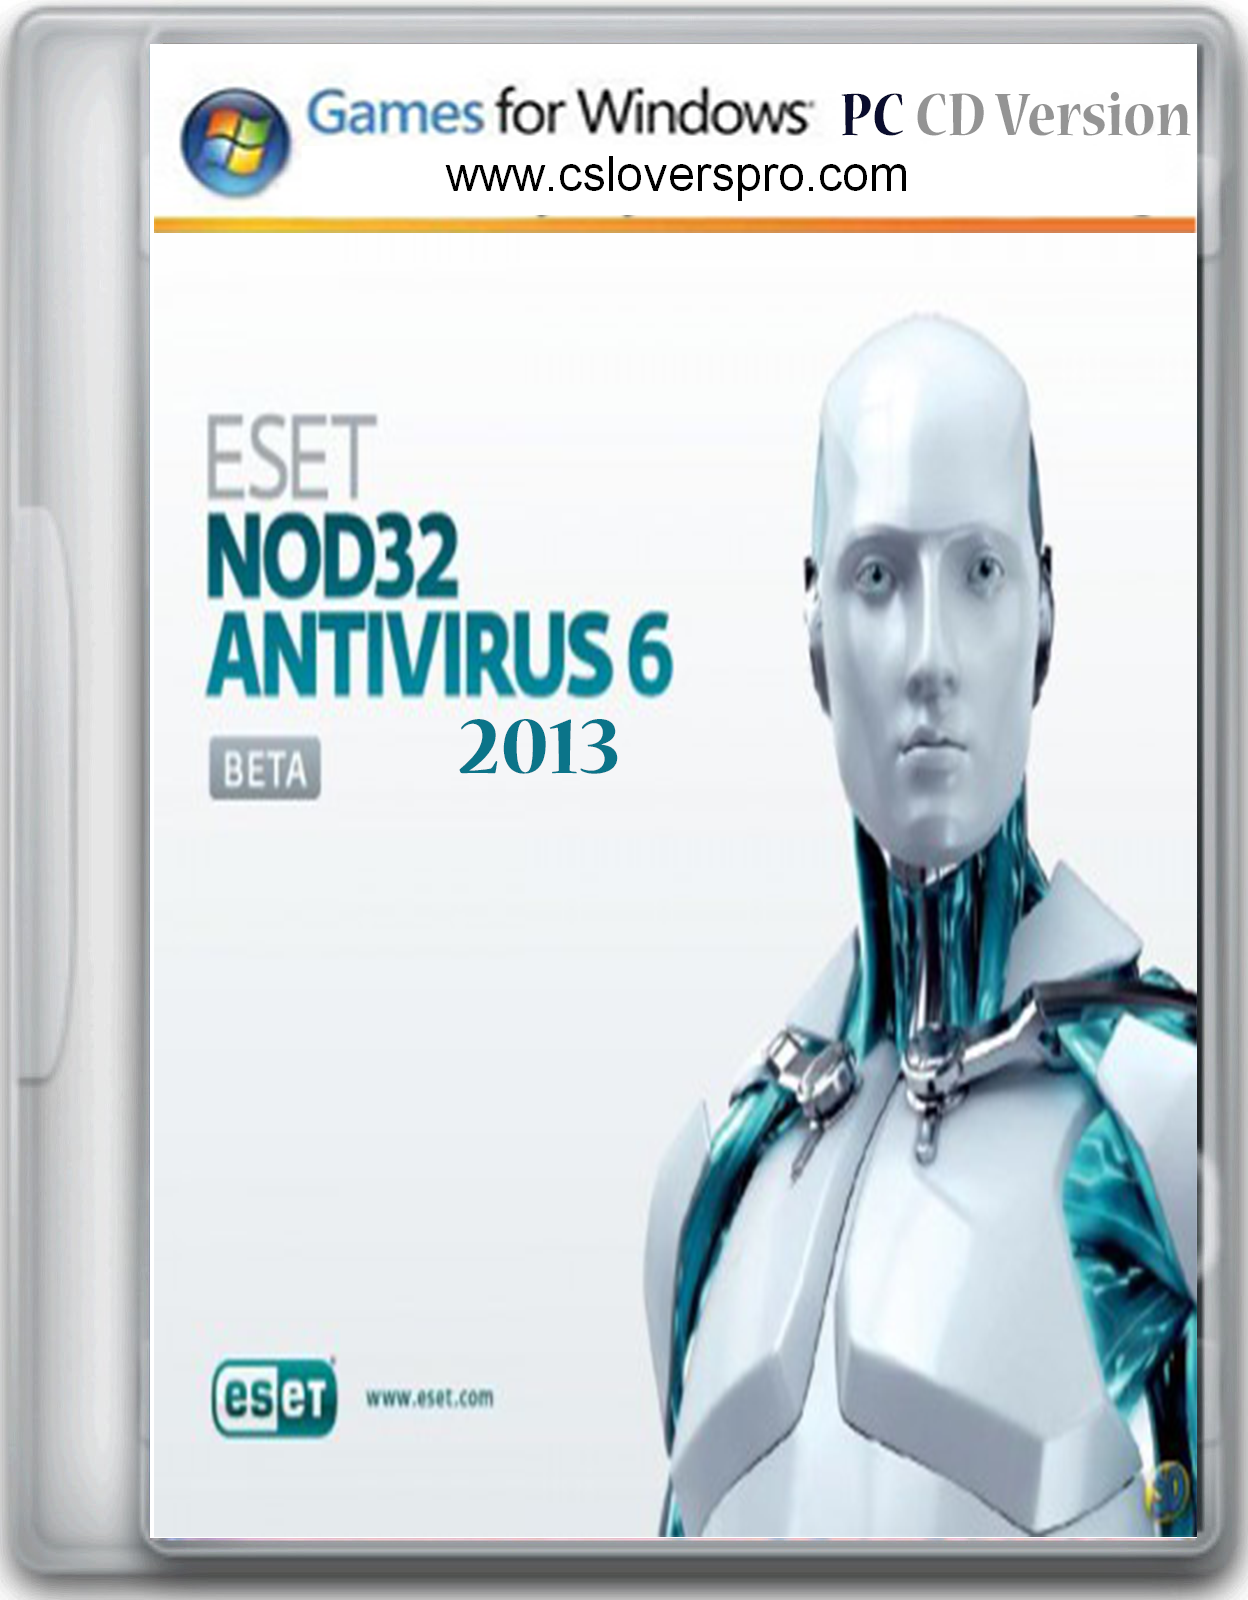 ESET NOD32 Antivirus Crack 2019 License Key Full Version With Torrent